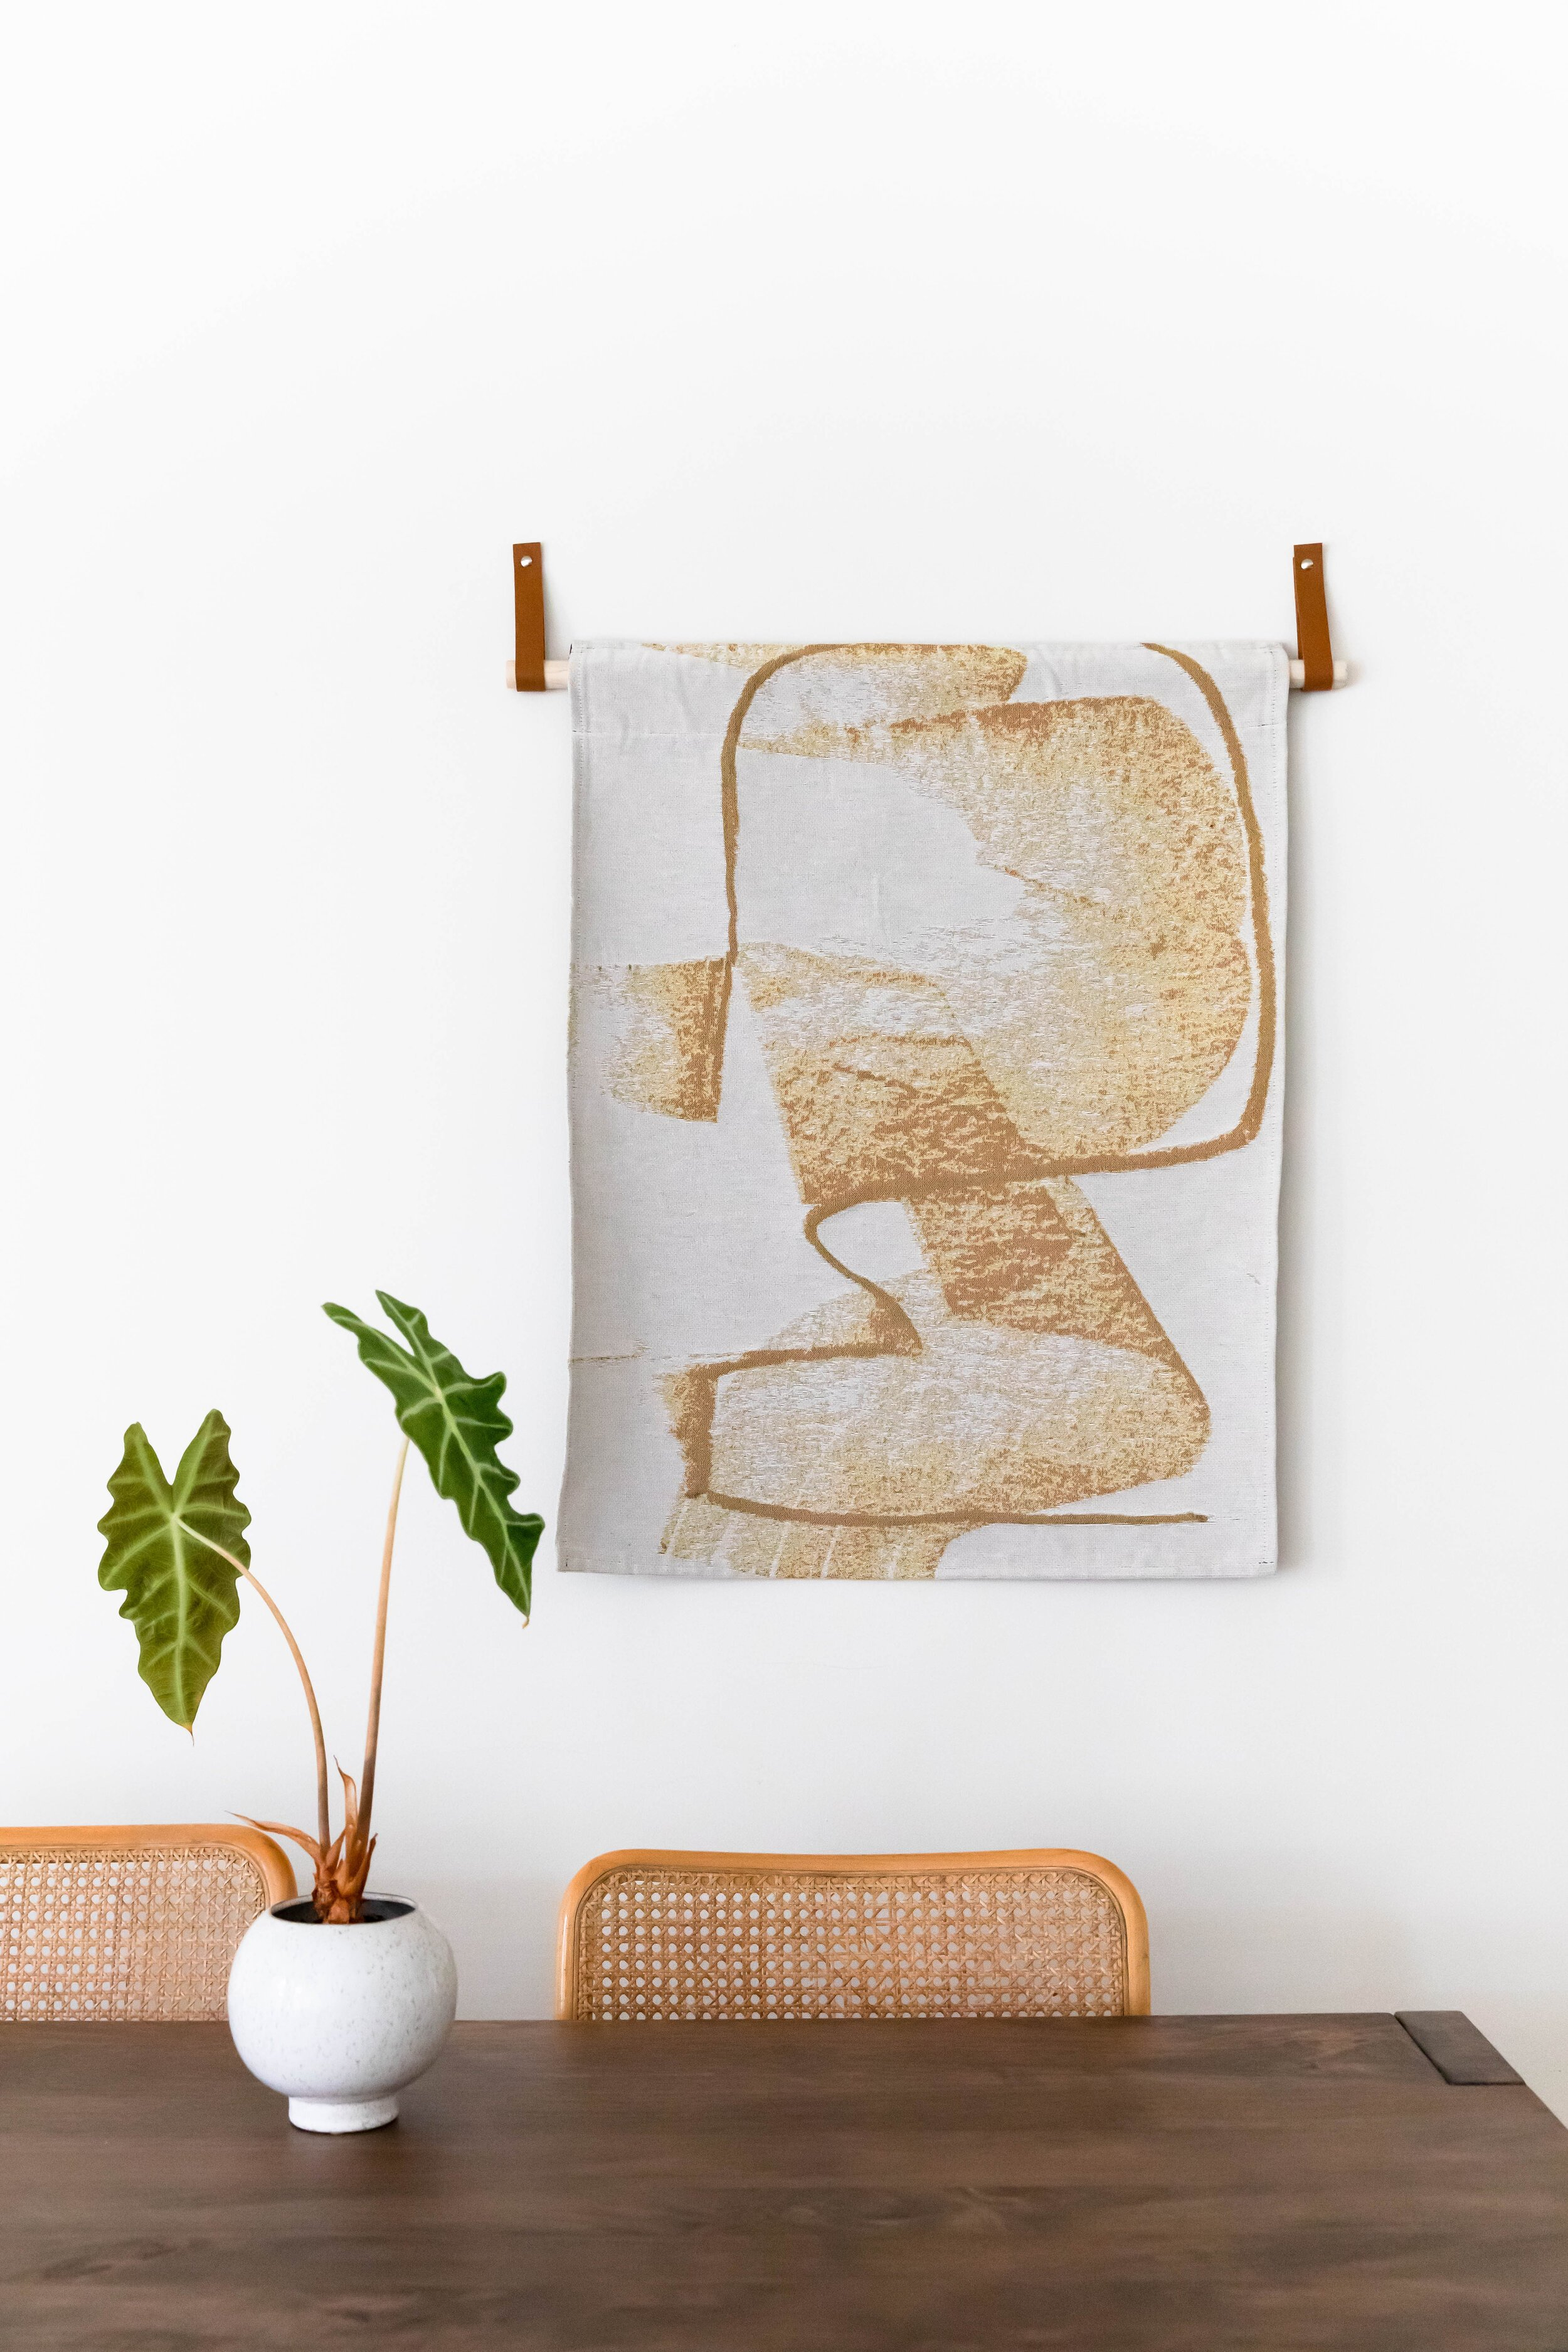 Pot plant on wooden table and wall art